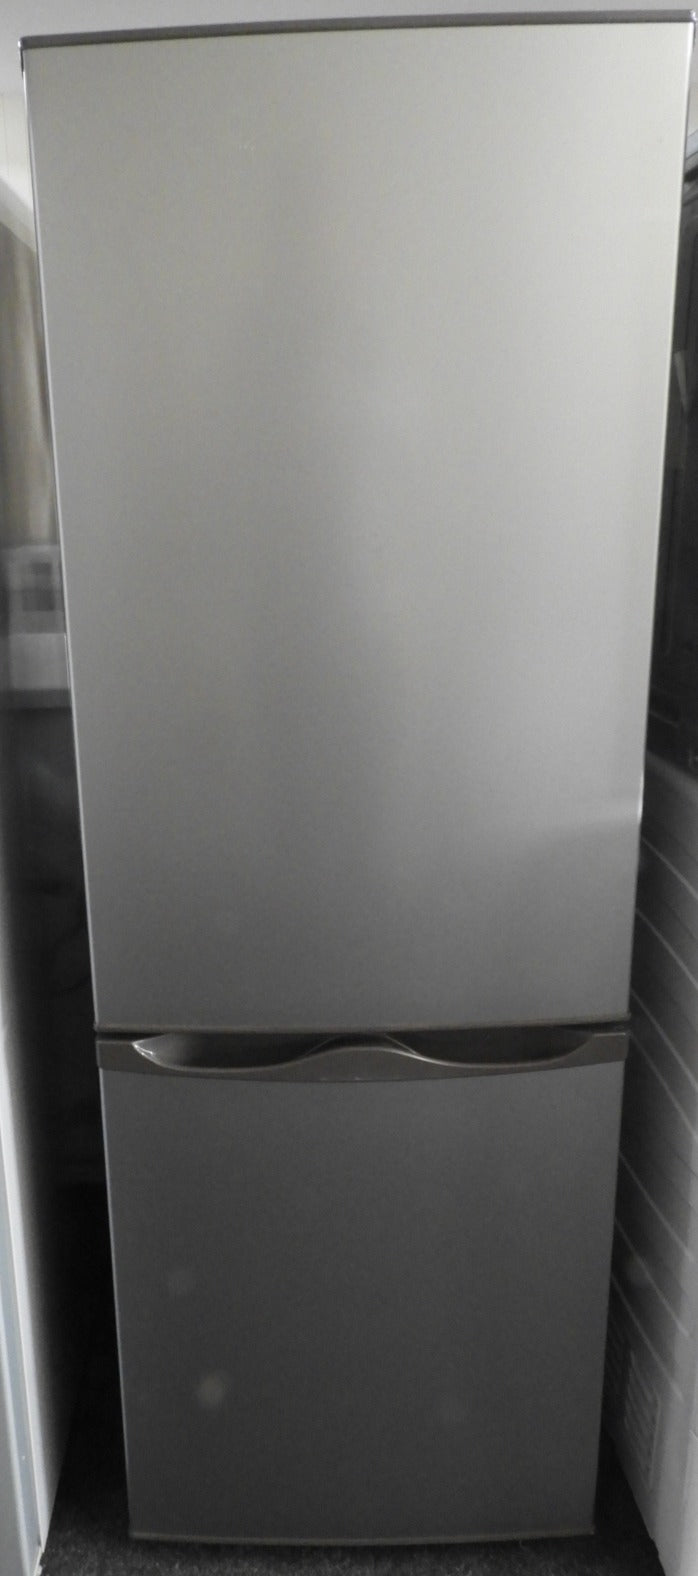 ESSENTIALS C50BS20 60/40 Fridge Freezer A+ 165L Manual Defrost Silver